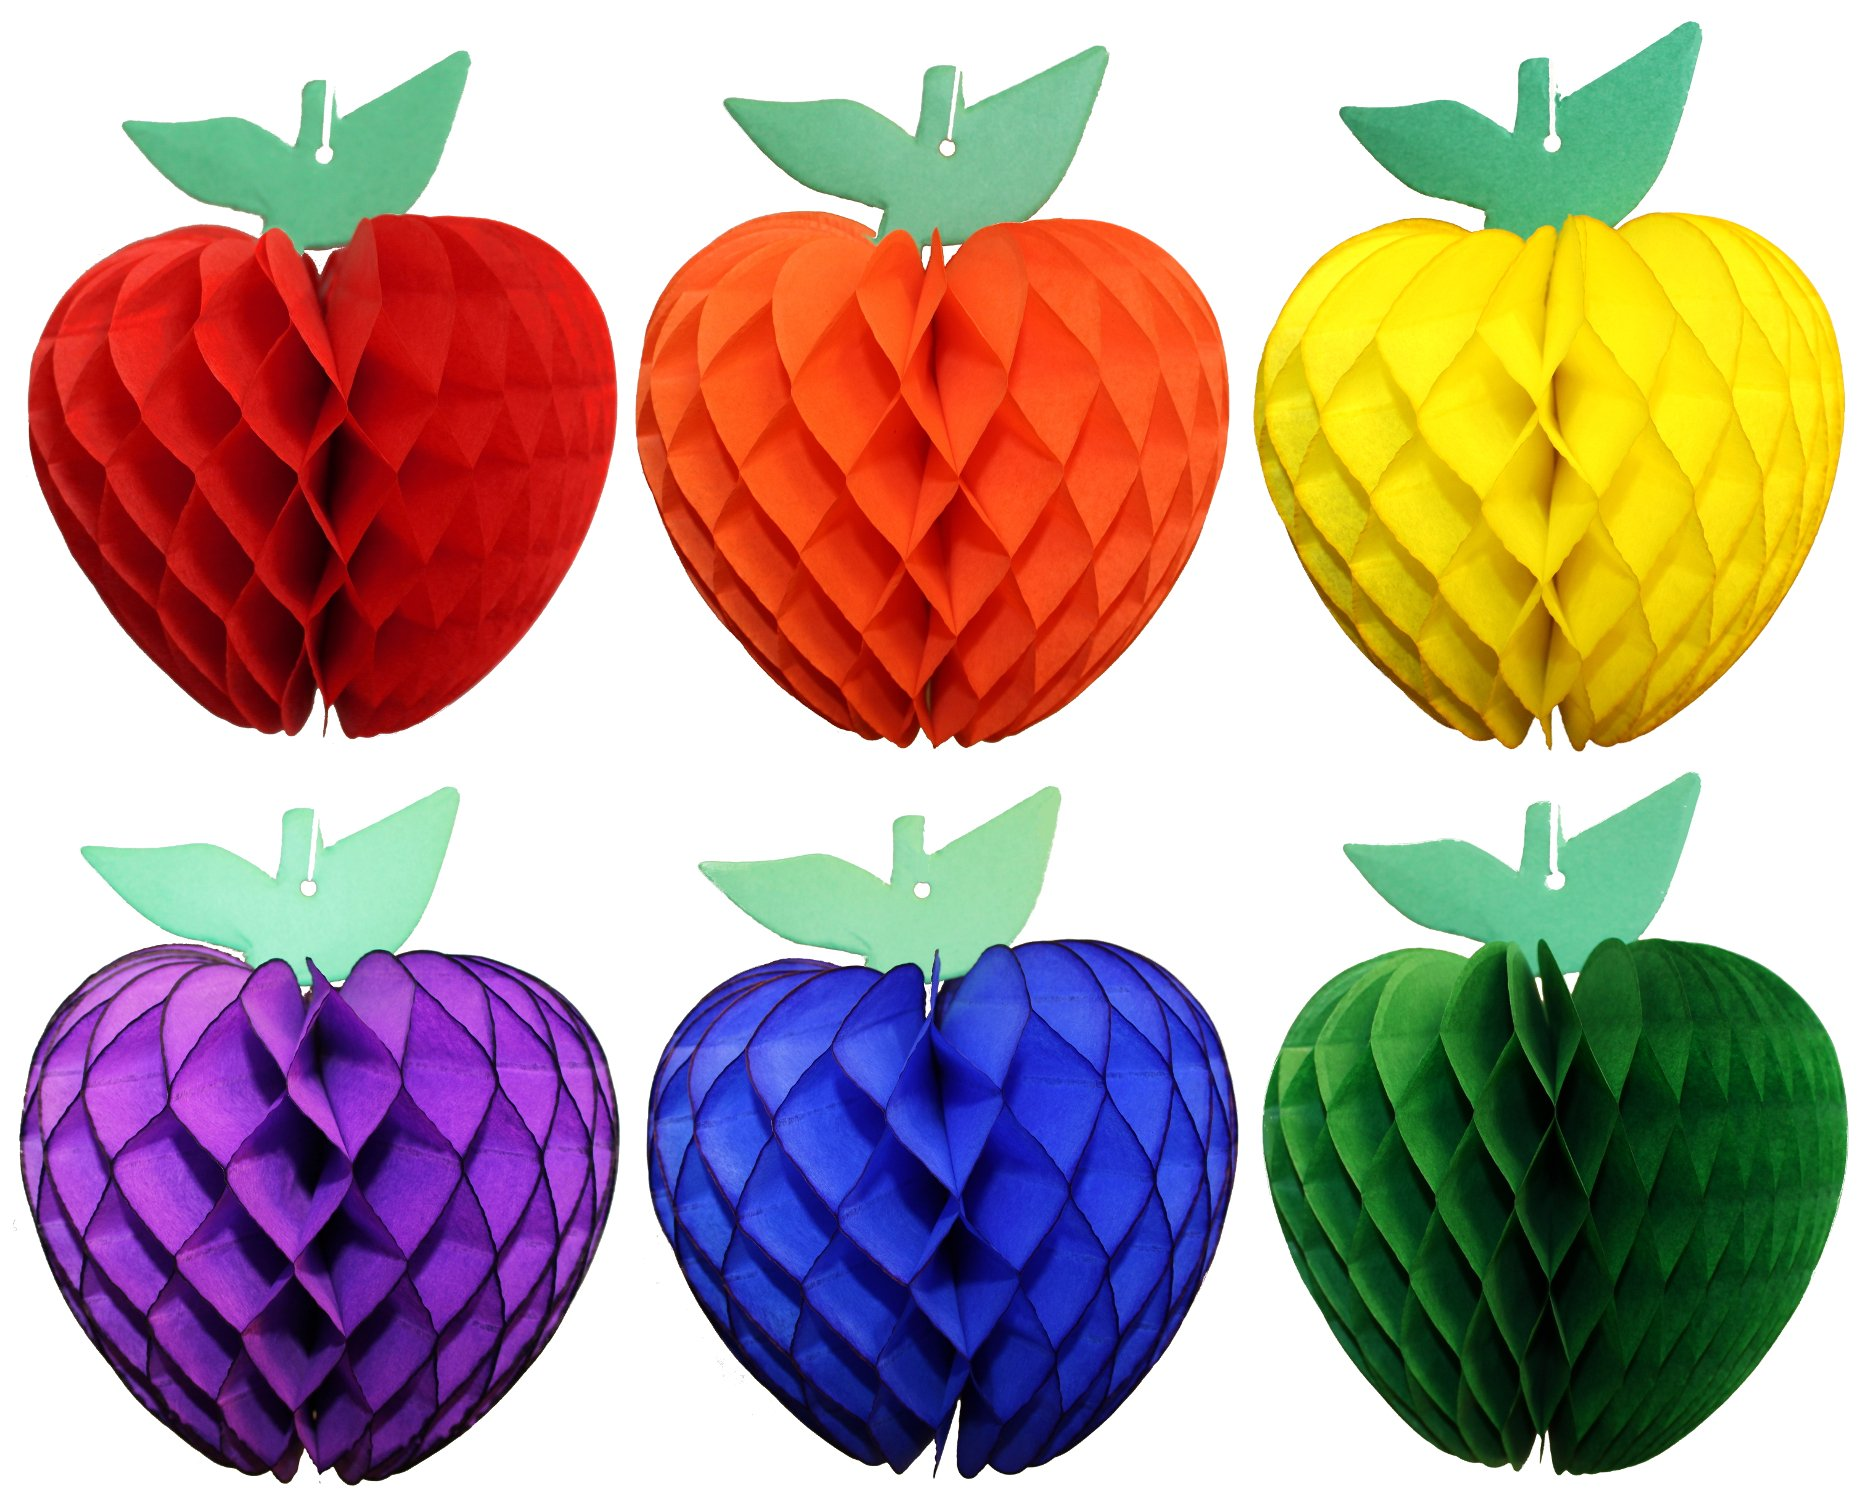 Classic Rainbow Themed 7 Inch Honeycomb Apple Fruit Party Decoration (6 apples)